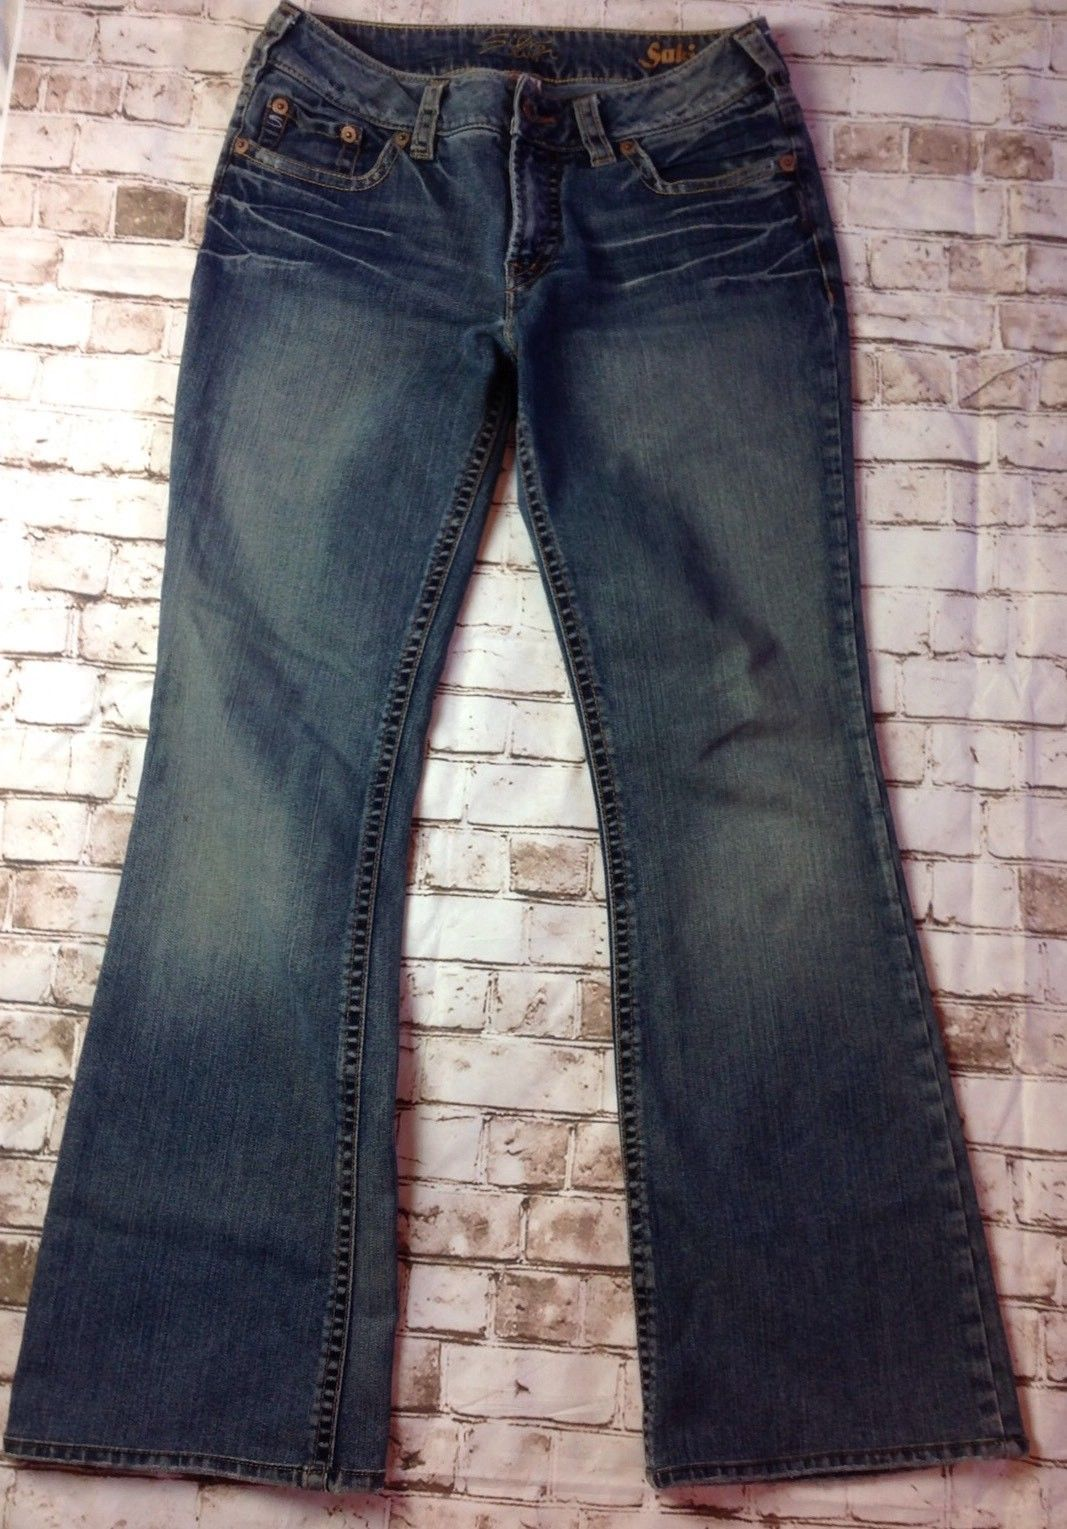 Primary image for SILVER SUKI Low Rise Boot Cut Stretch Jeans Lt. Distress Womens  Sz 30 W 31 L 30